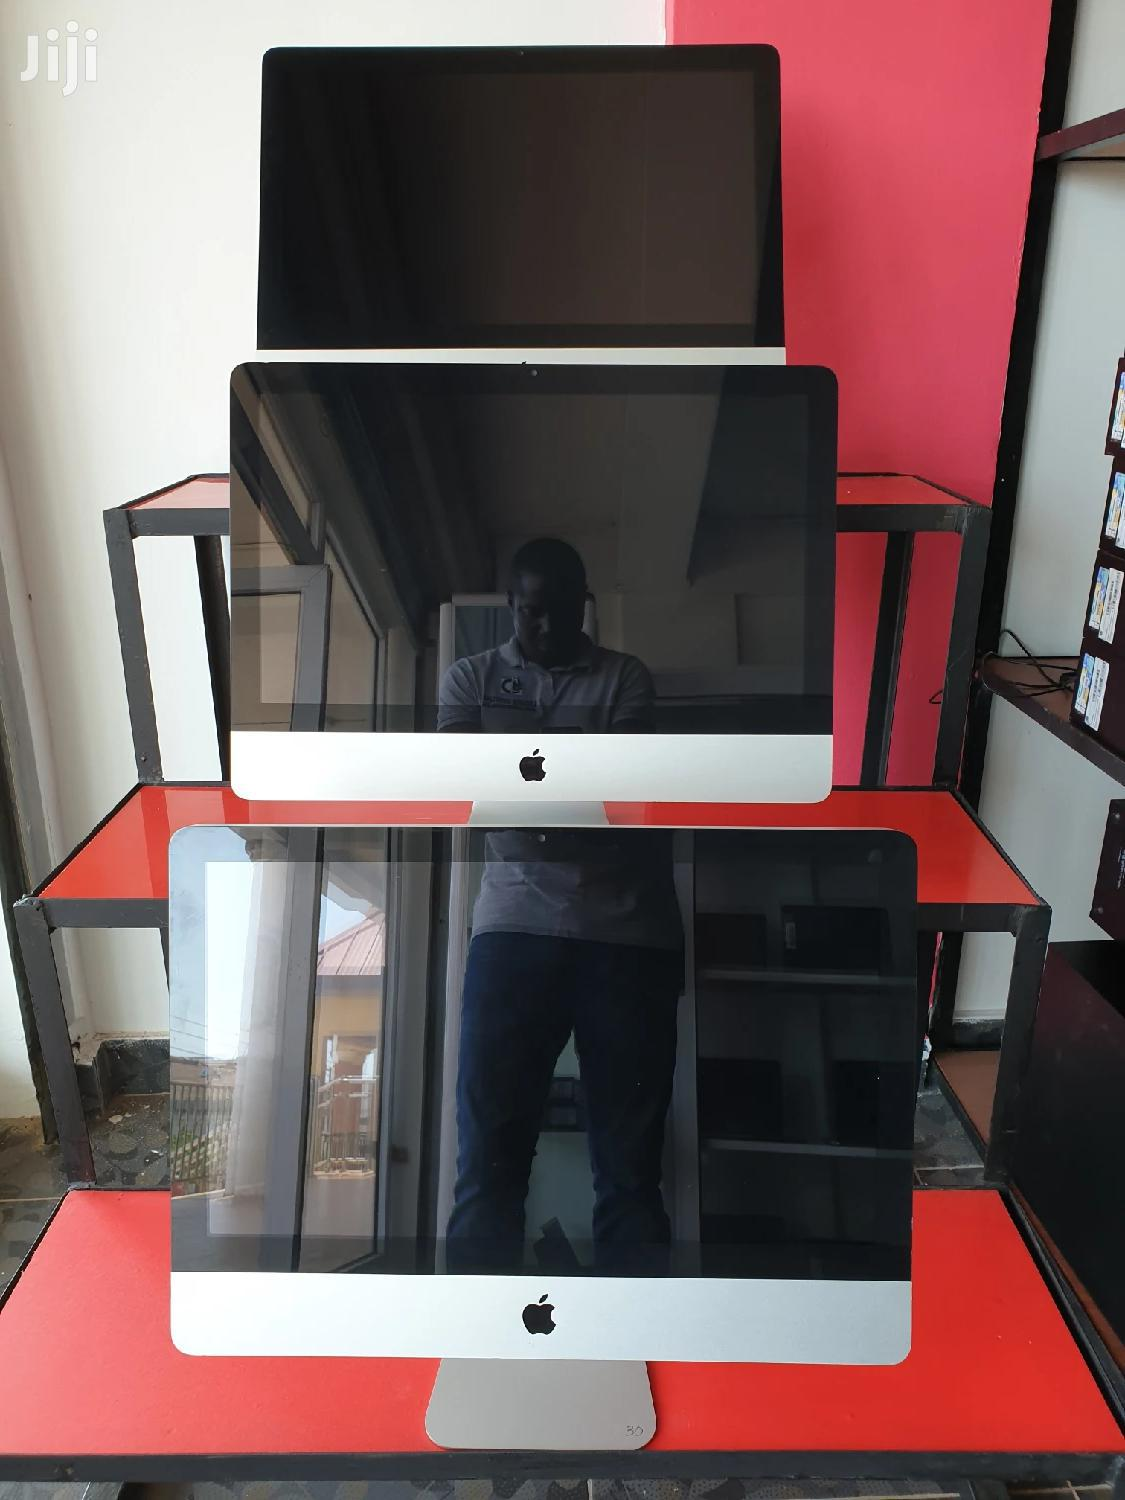 Desktop Computer Apple iMac 8GB Intel Core i5 HDD 500GB   Laptops & Computers for sale in Labadi-Aborm, Greater Accra, Ghana